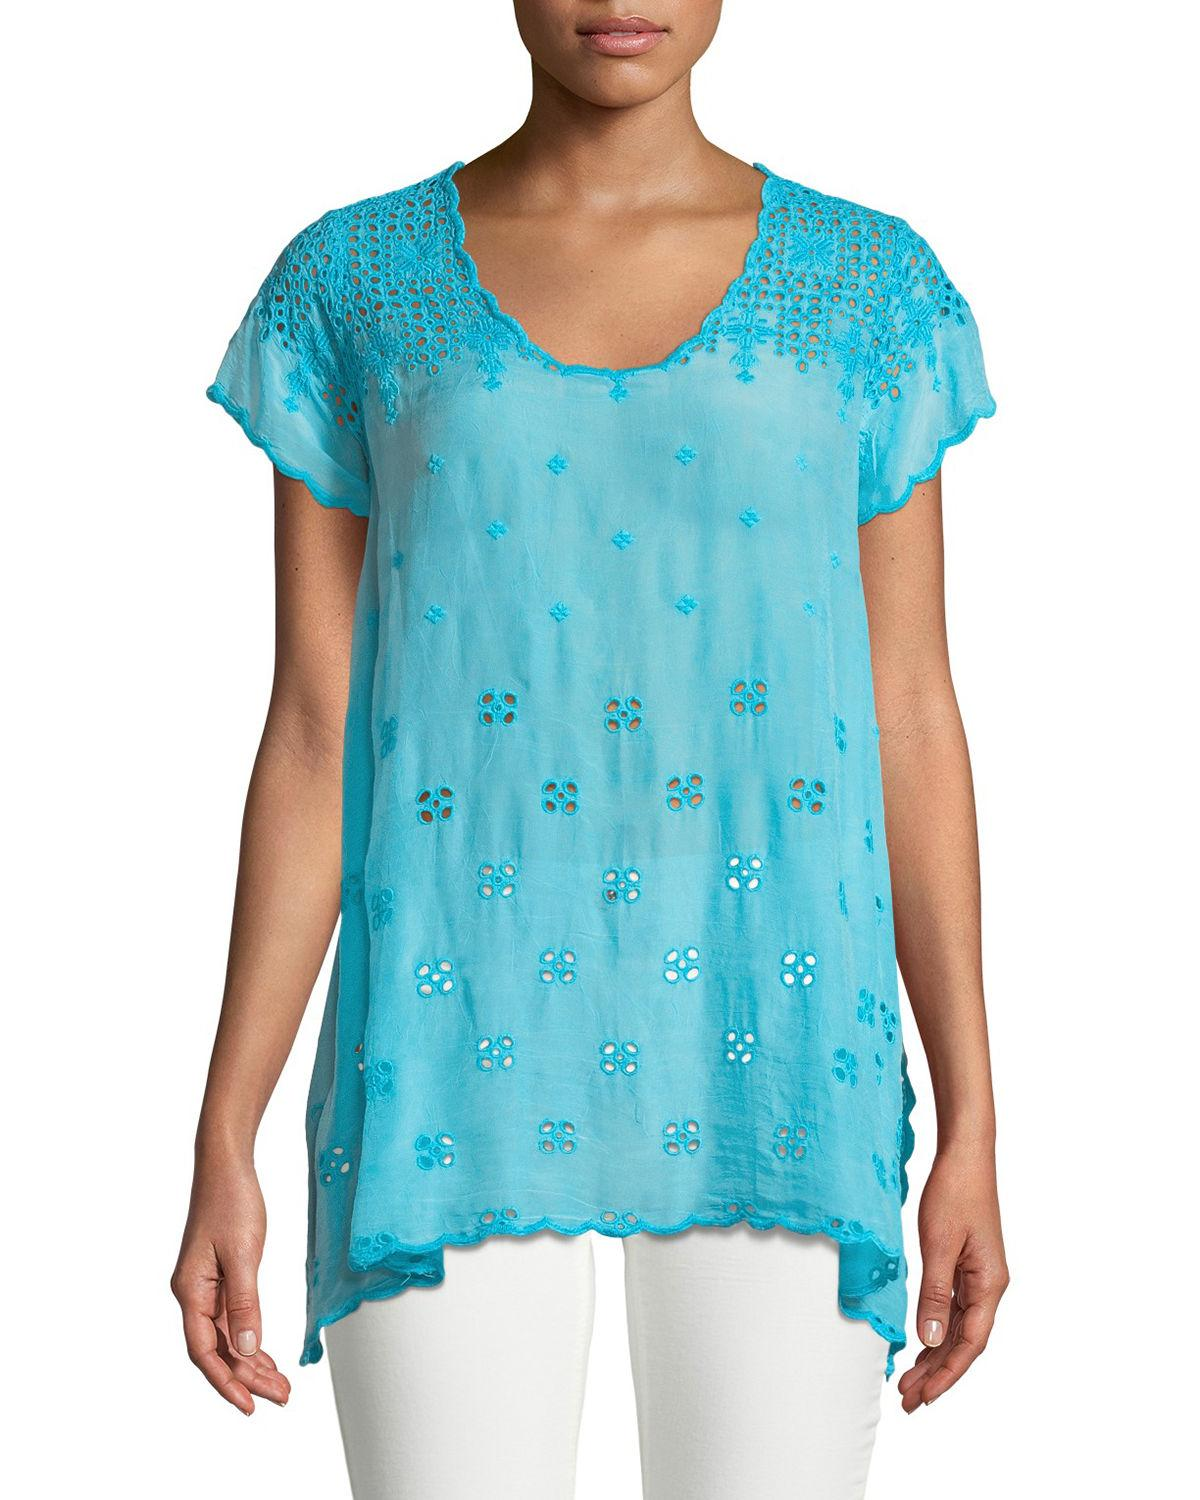 Johnny Was Darla Eyelet-embroidered Easy Tunic, Plus Size In Clear Sky